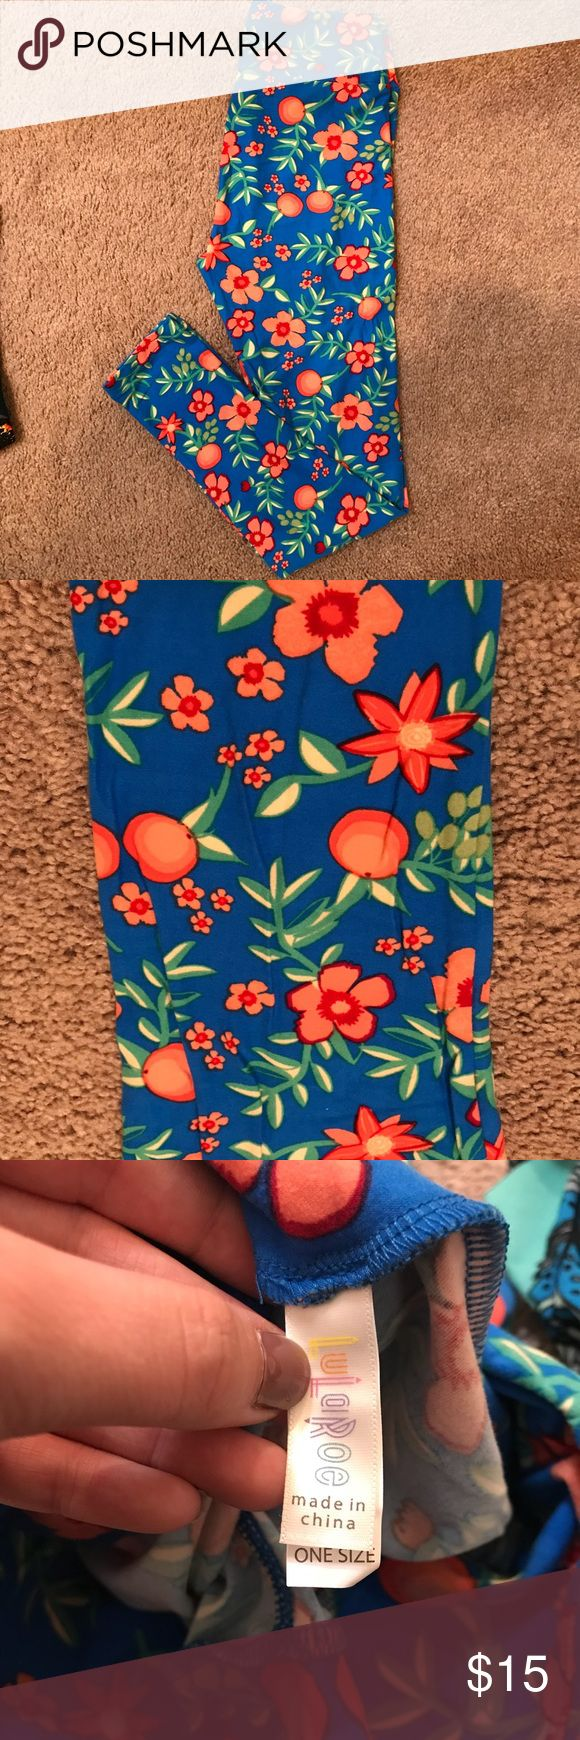 OS LulaRoe Leggings! Worn 1x. If you don't know, these are the softest leggings out there right now! I've only worn each 1 time. I have too many to keep track of so I want to sell them to someone who will really make use of them :) I am 5'4 140 pounds. They fit me fine and even have extra room. LuLaRoe Pants Leggings